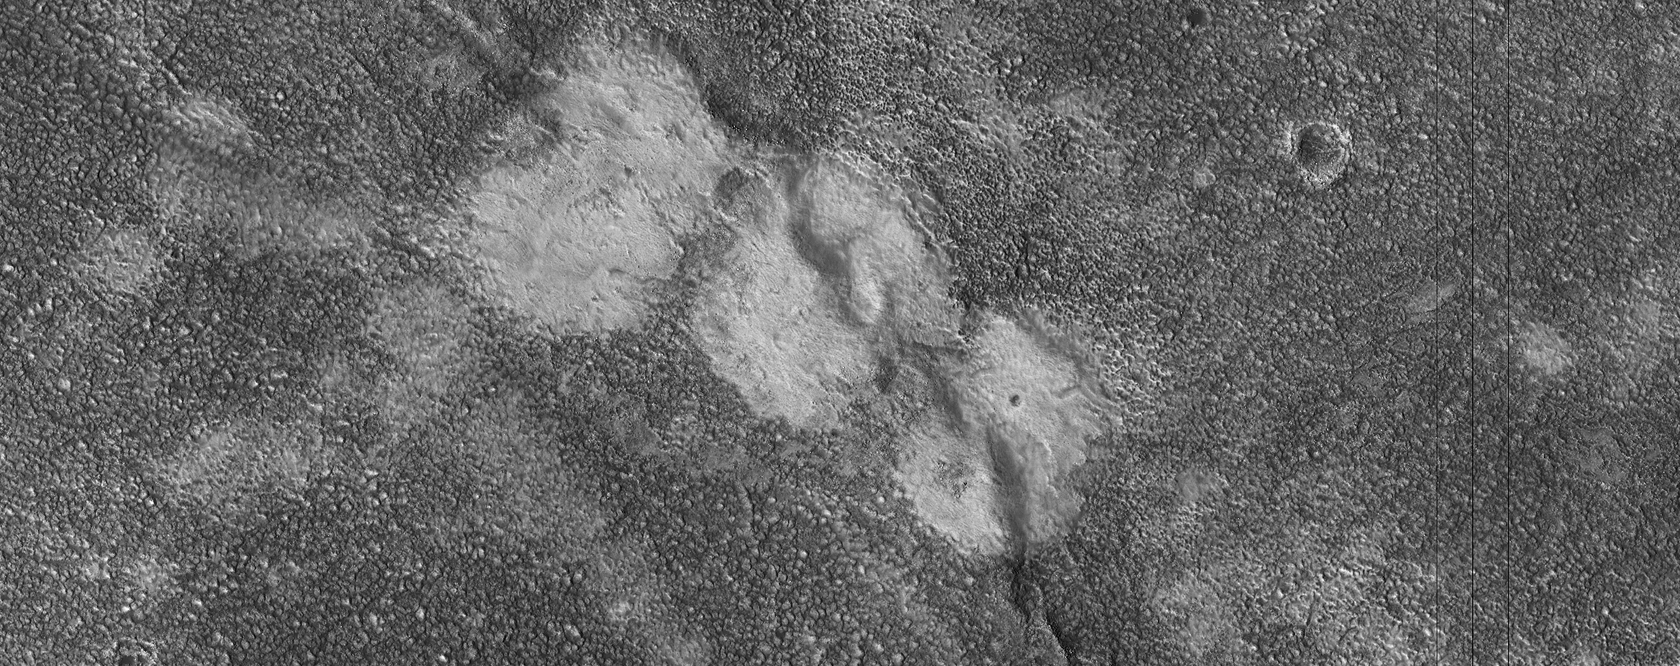 Mounds Cut by a Fissure